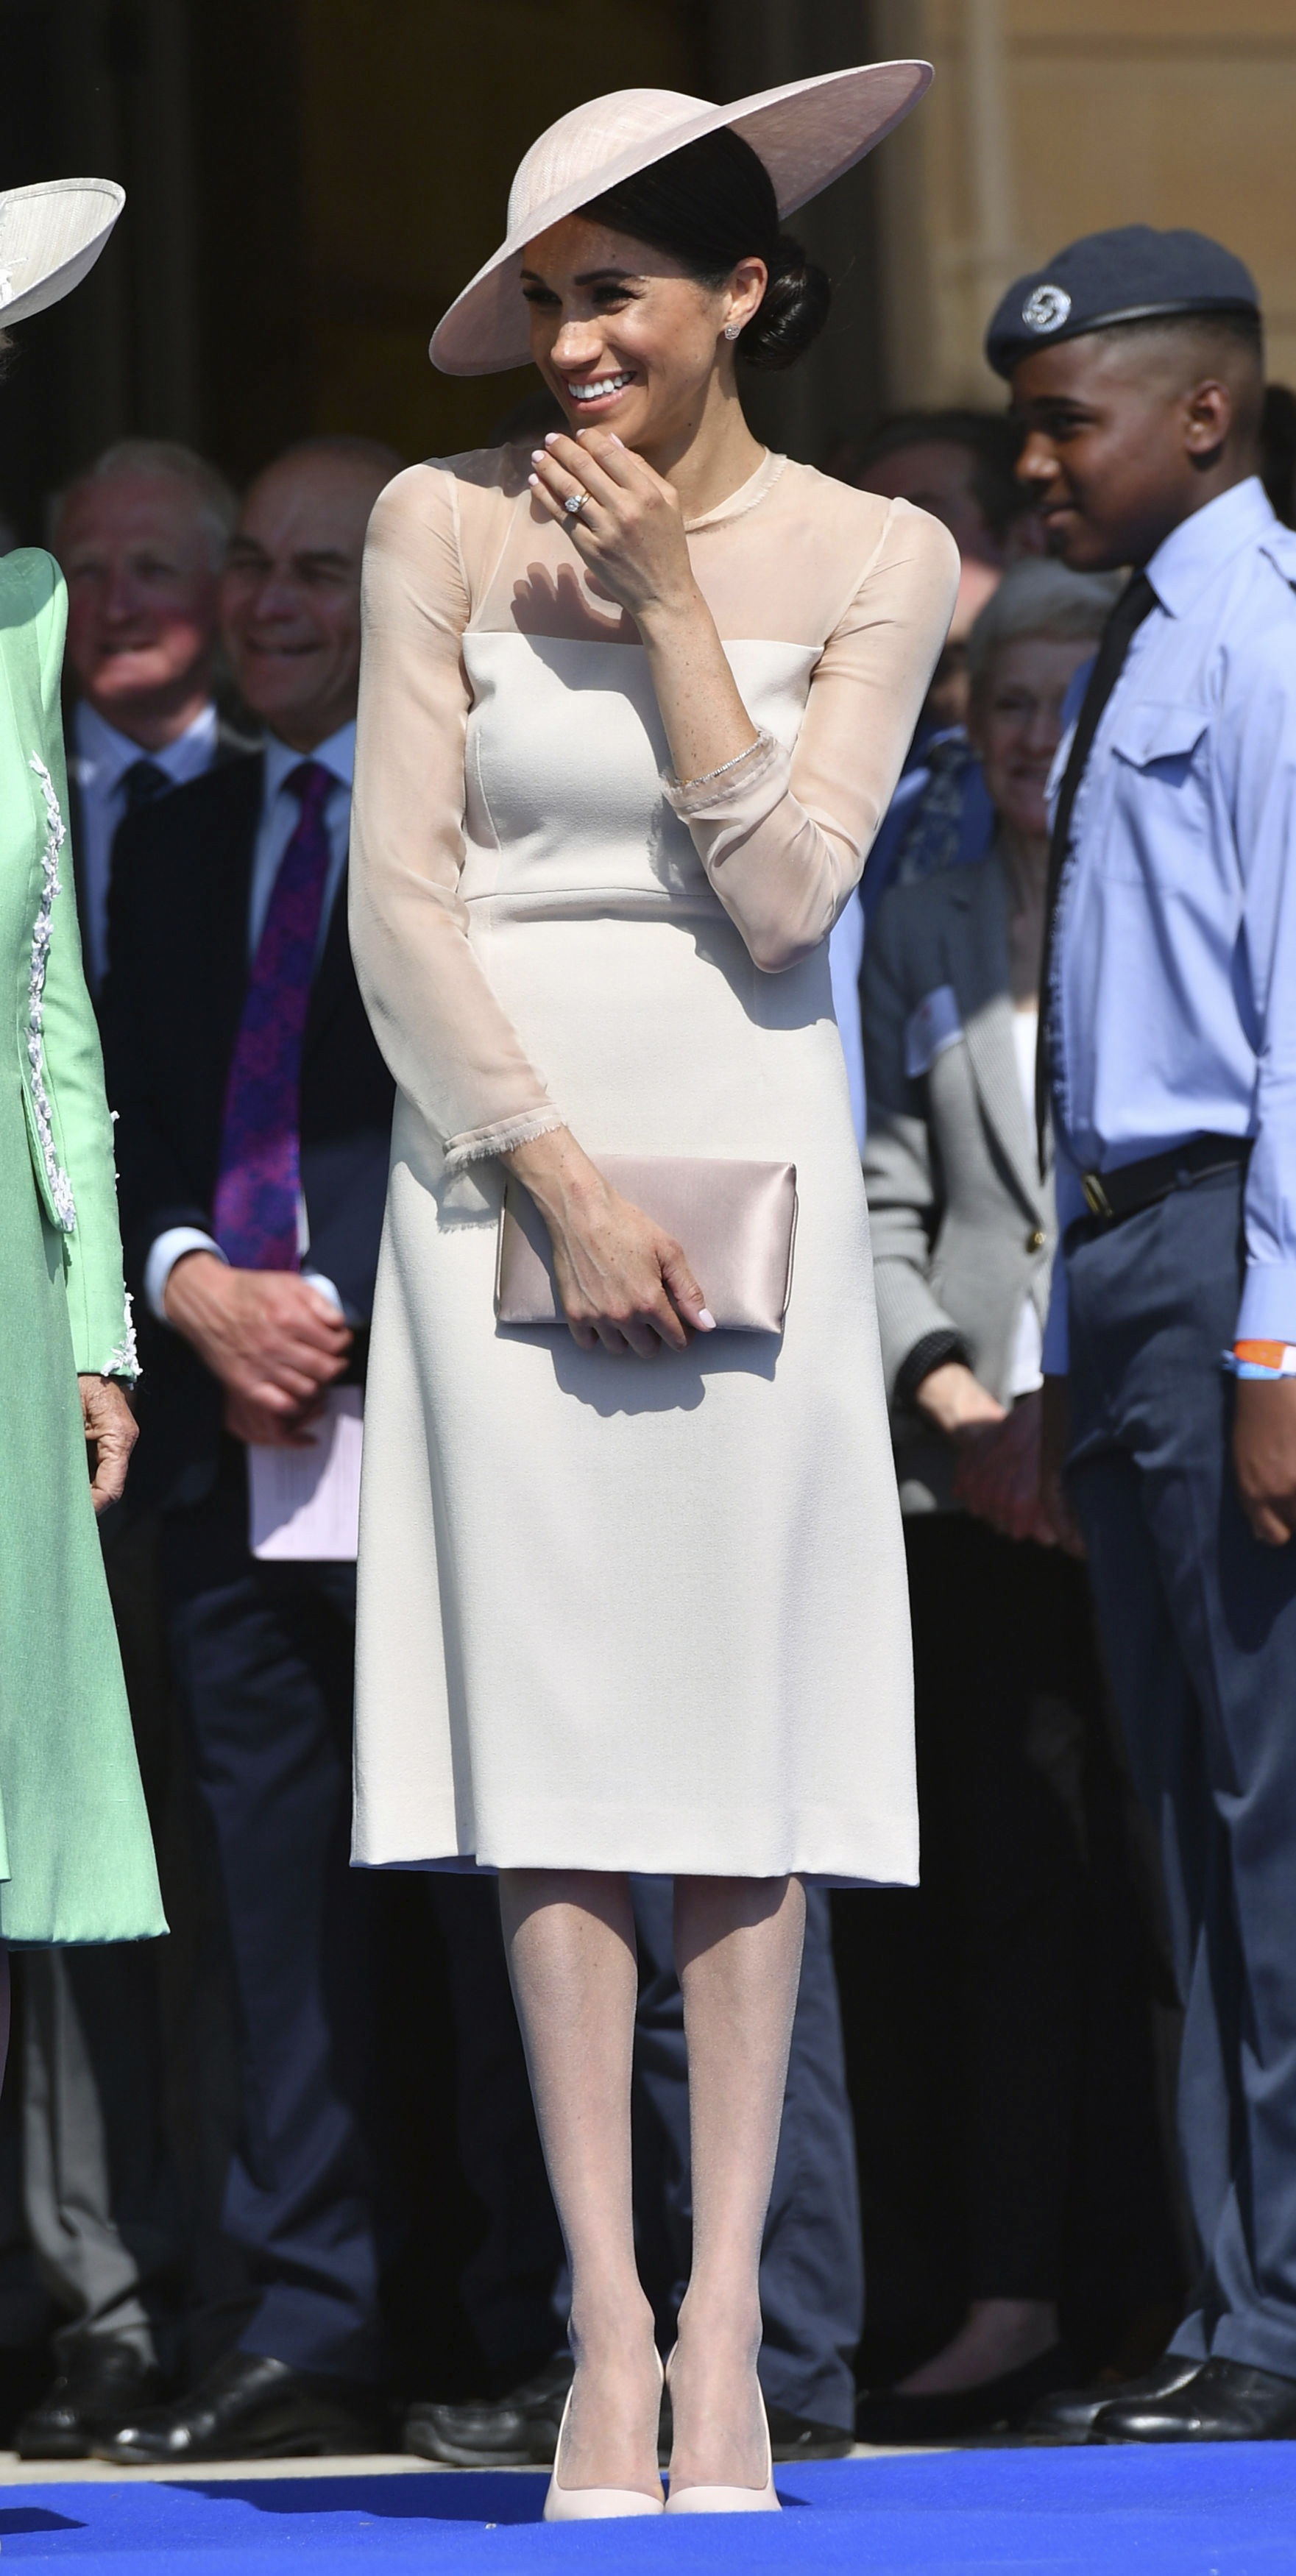 <div class='meta'><div class='origin-logo' data-origin='none'></div><span class='caption-text' data-credit='Dominic Lipinski/Pool Photo via AP'>Meghan, the Duchess of Sussex gestures as she attends a garden party at Buckingham Palace in London, Tuesday May 22, 2018.</span></div>